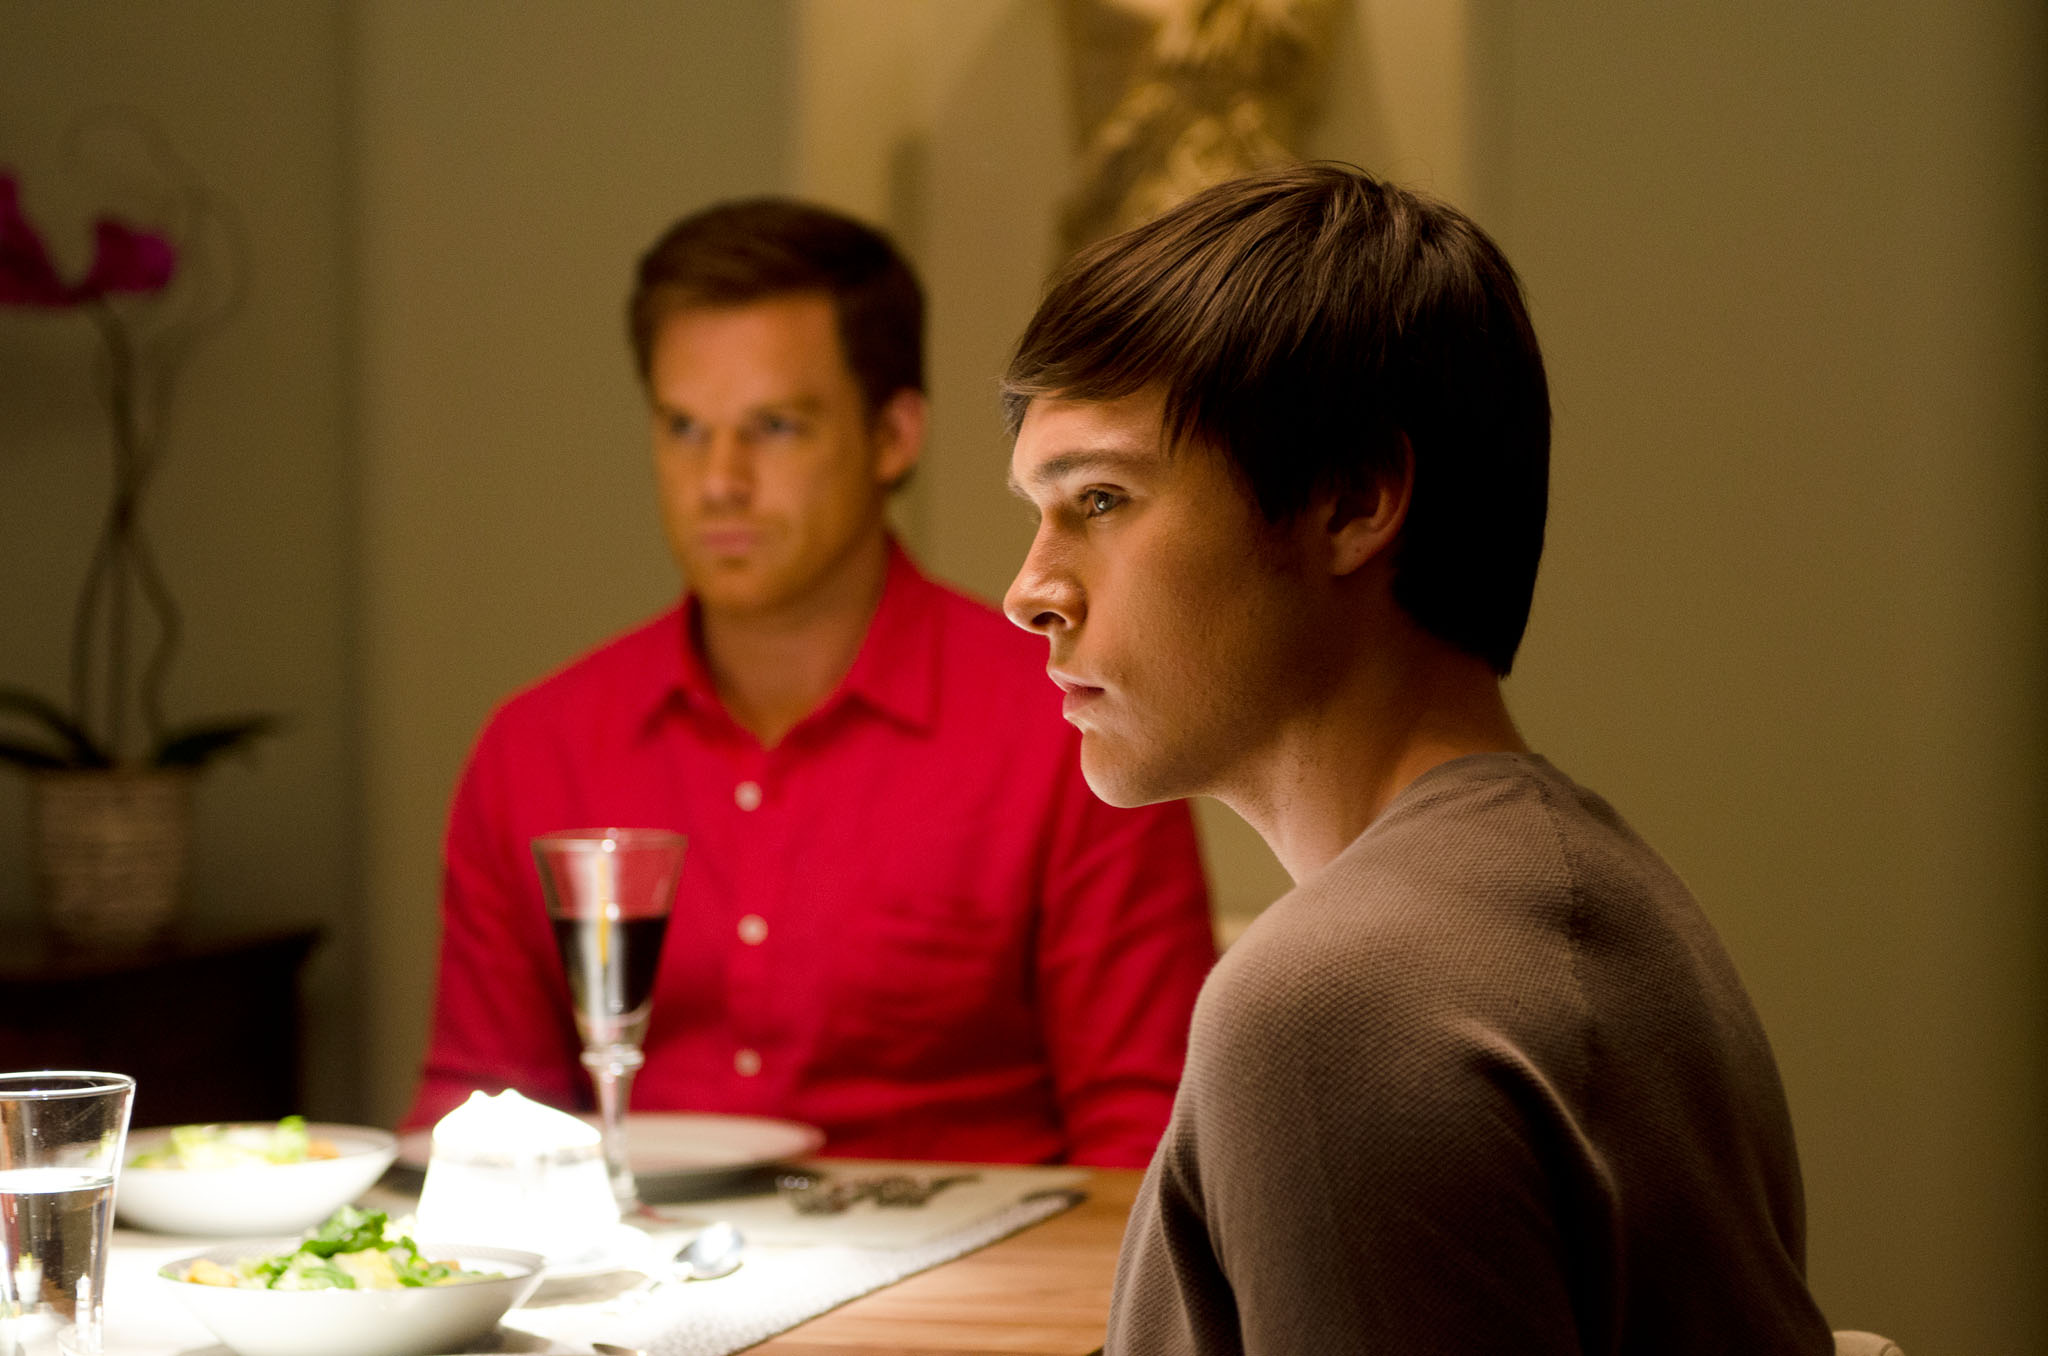 Michael C. Hall as Dexter Morgan and Sam Underwood as Zach Hamilton in the 'Dexter' Season 8 episode, 'Are We There Yet?'